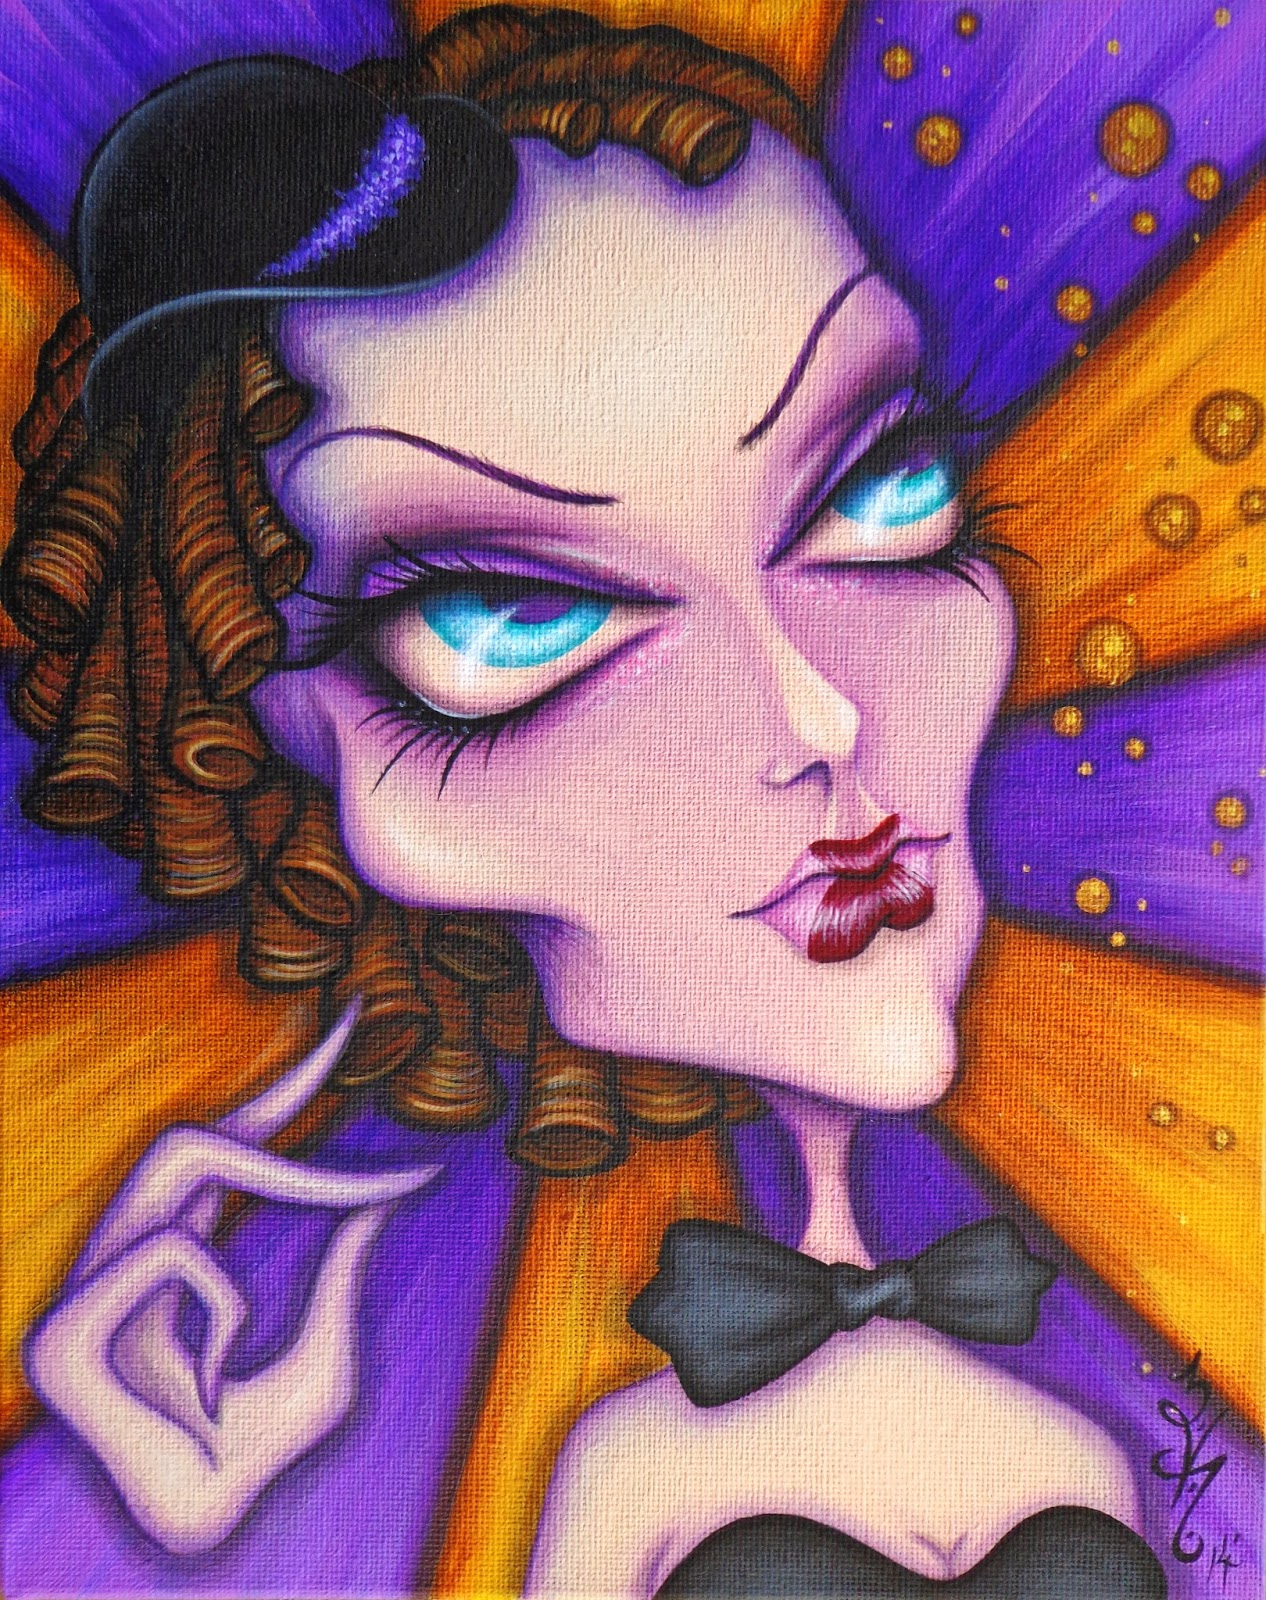 https://www.etsy.com/listing/182394078/original-fantasy-lowbrow-woman-girl-face?ref=shop_home_active_1